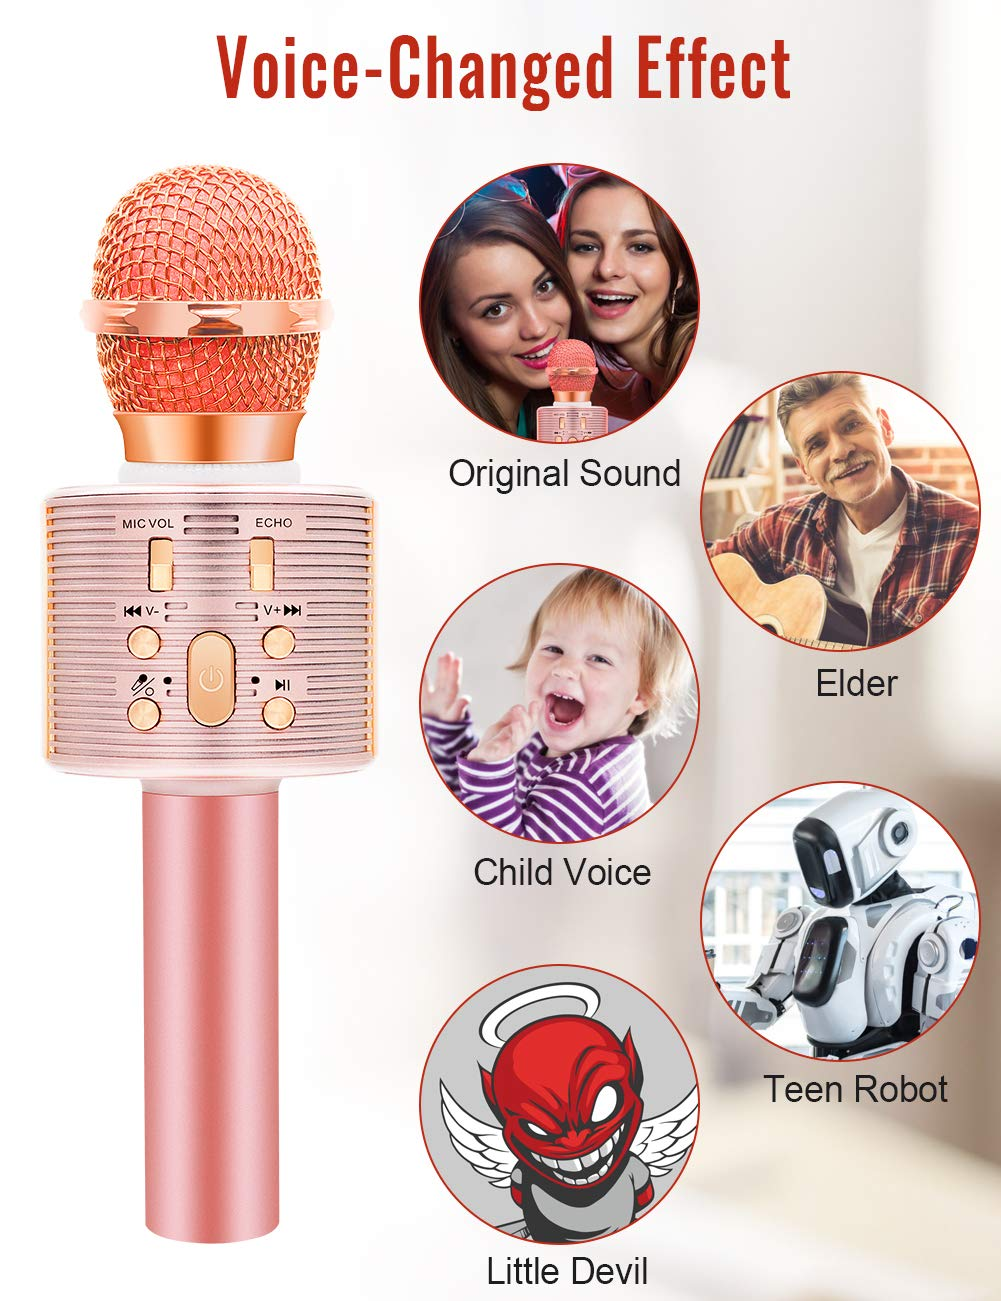 Wireless Karaoke Microphone with Speaker Pro, 3-in-1 Portable Handheld Karaoke Mic Home Party Birthday Gifts for Kids Speaker Machine for Android/ PC /phone(Rose Gold) by weird tails (Image #3)